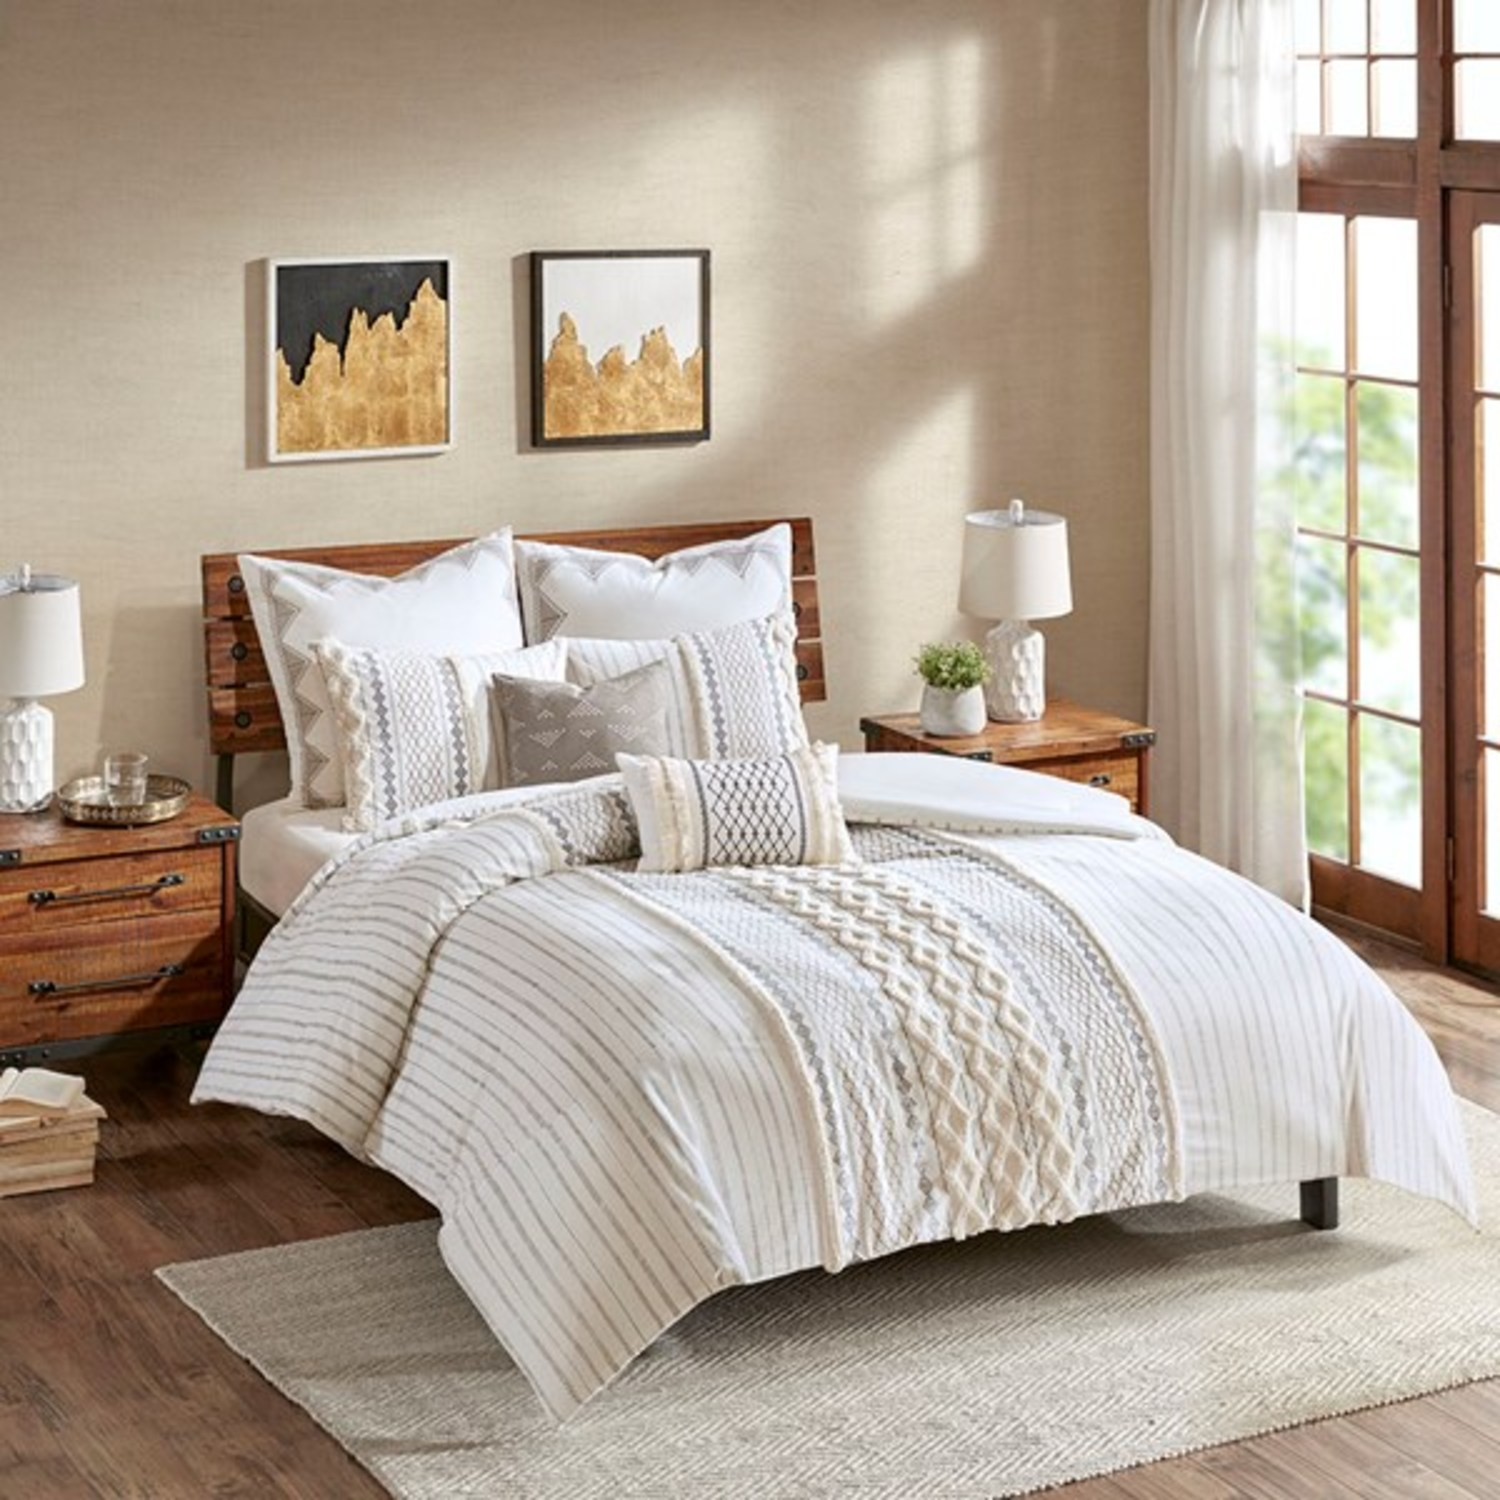 Imani by Ink & Ivy Bedding